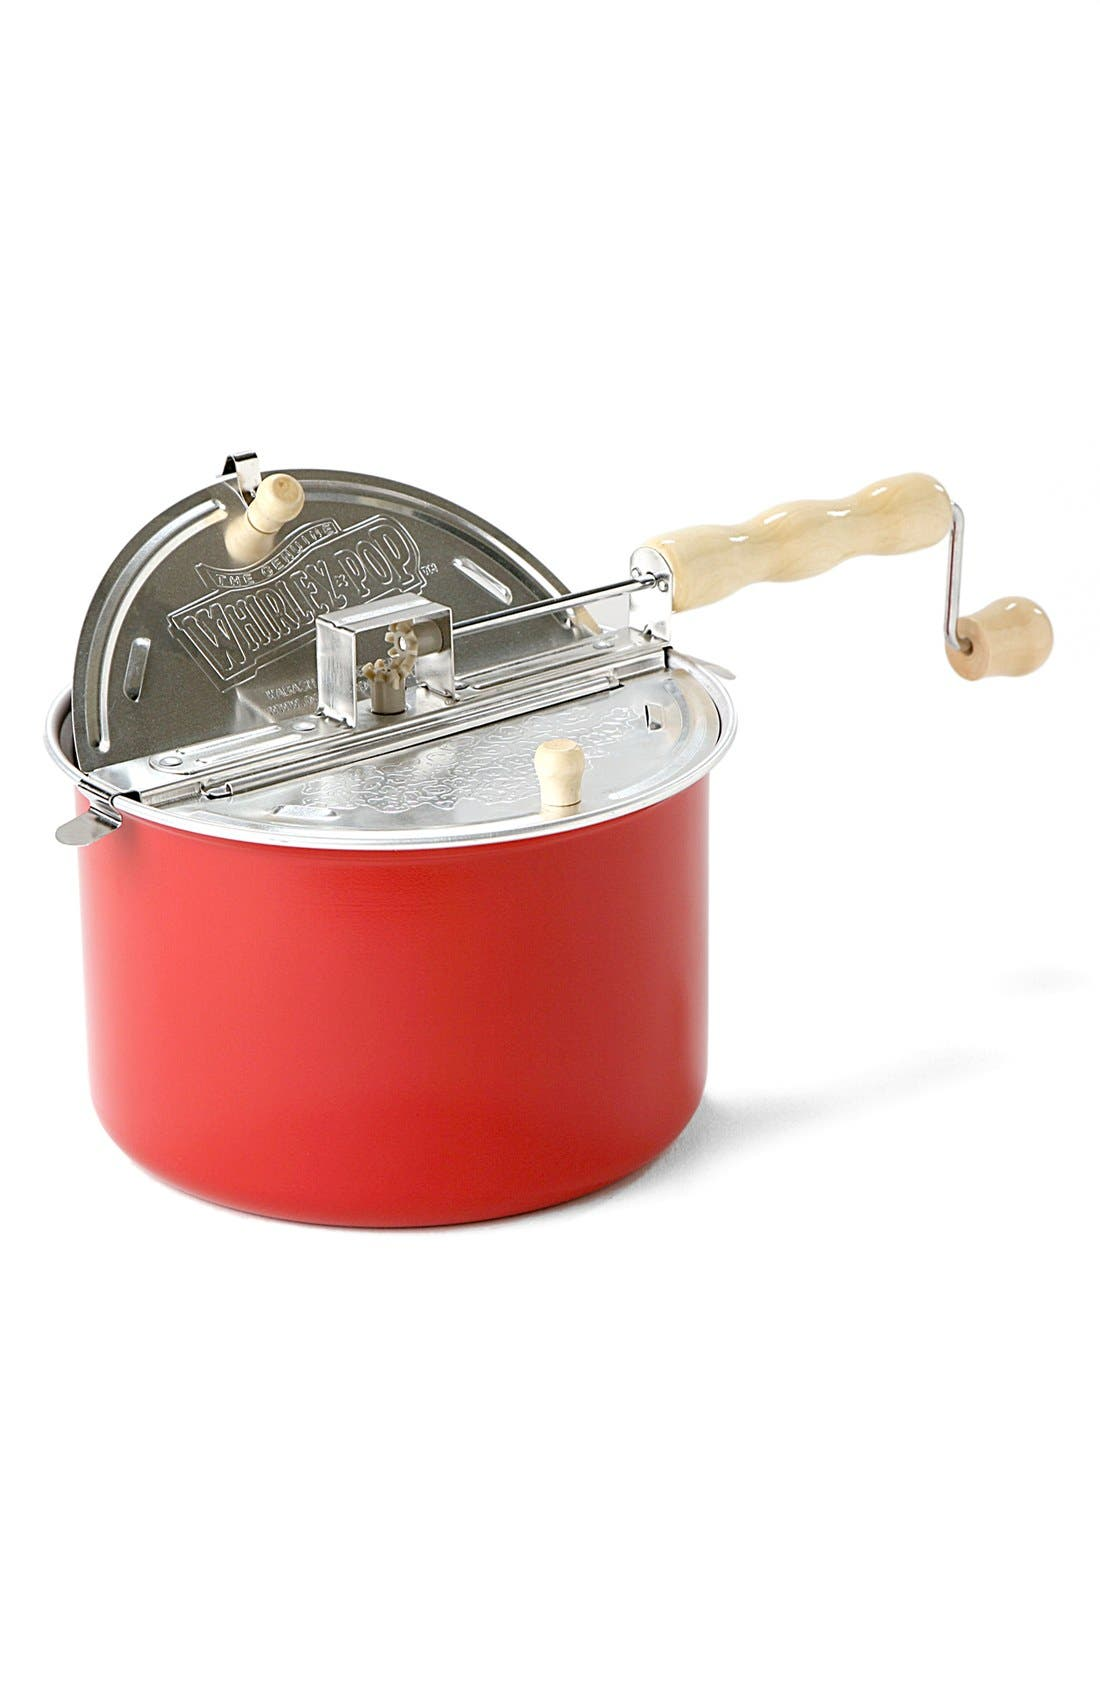 'Whirley Pop' Hand Crank Stovetop Popcorn Popper,                             Main thumbnail 1, color,                             600